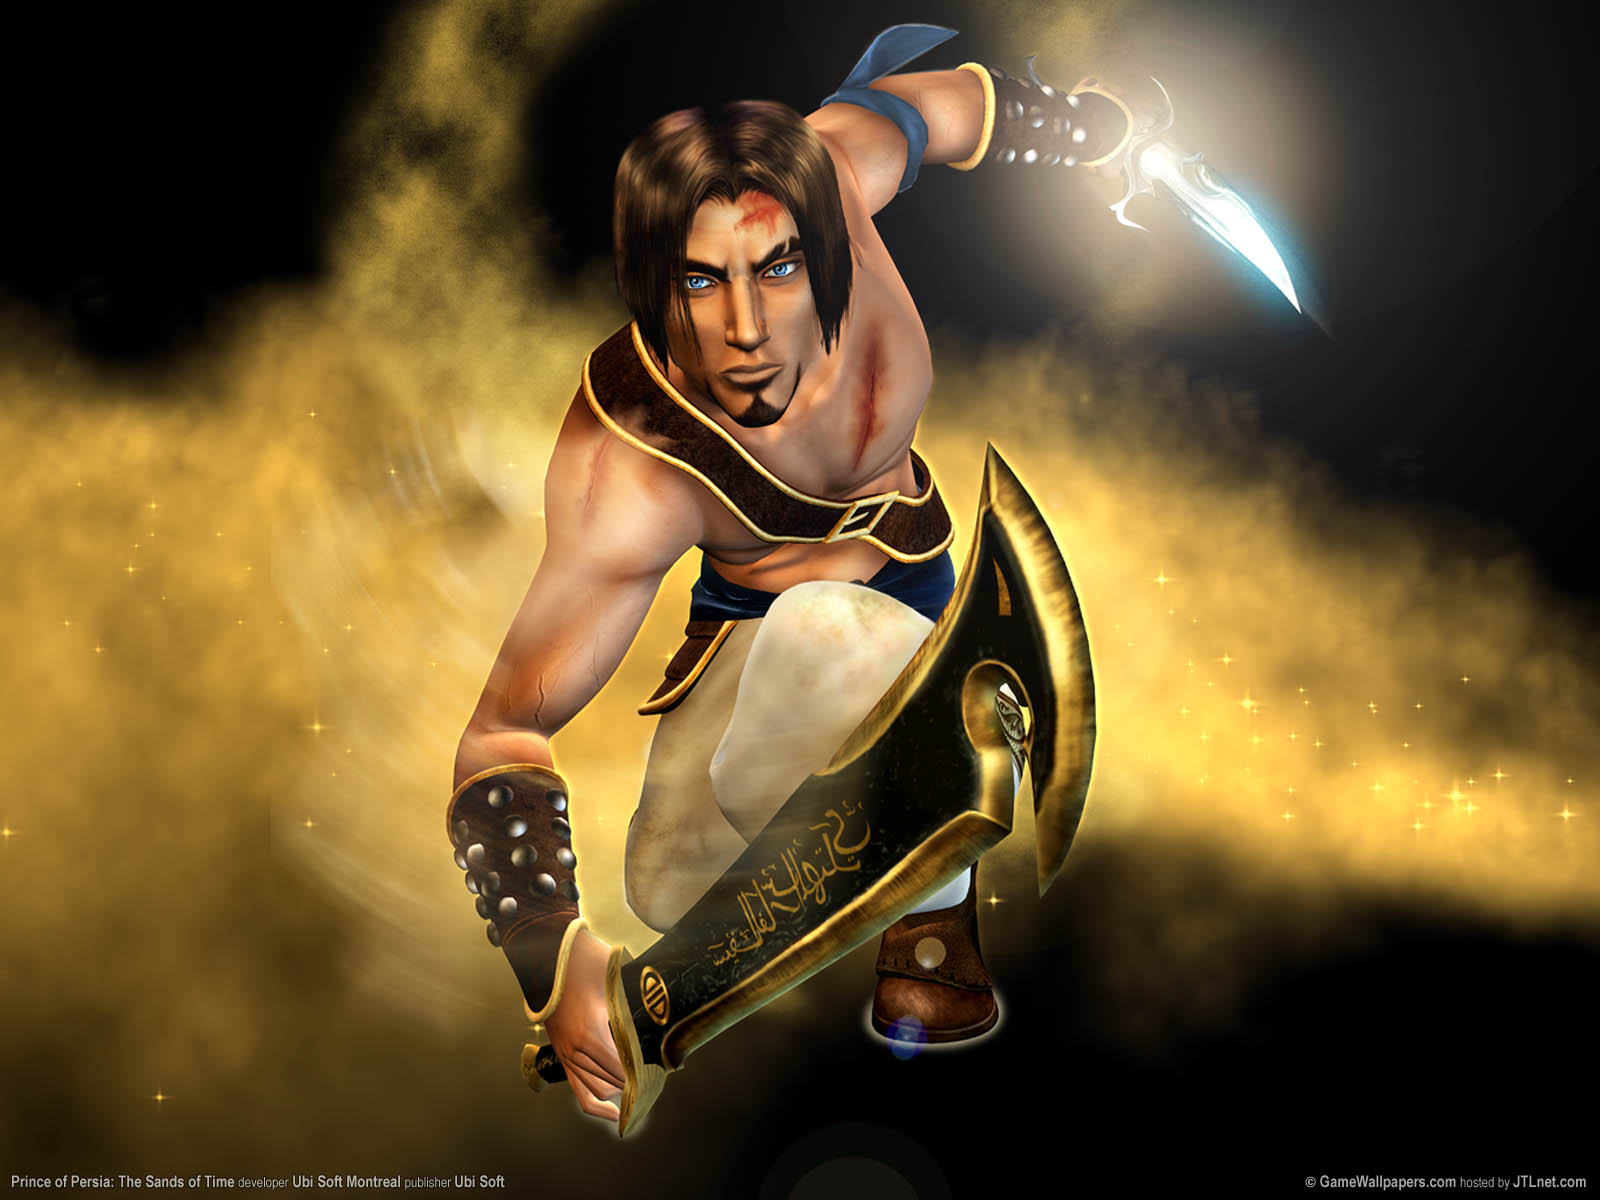 Prince Of Persia The Sands Of Time Wallpaper 04 1600x1200